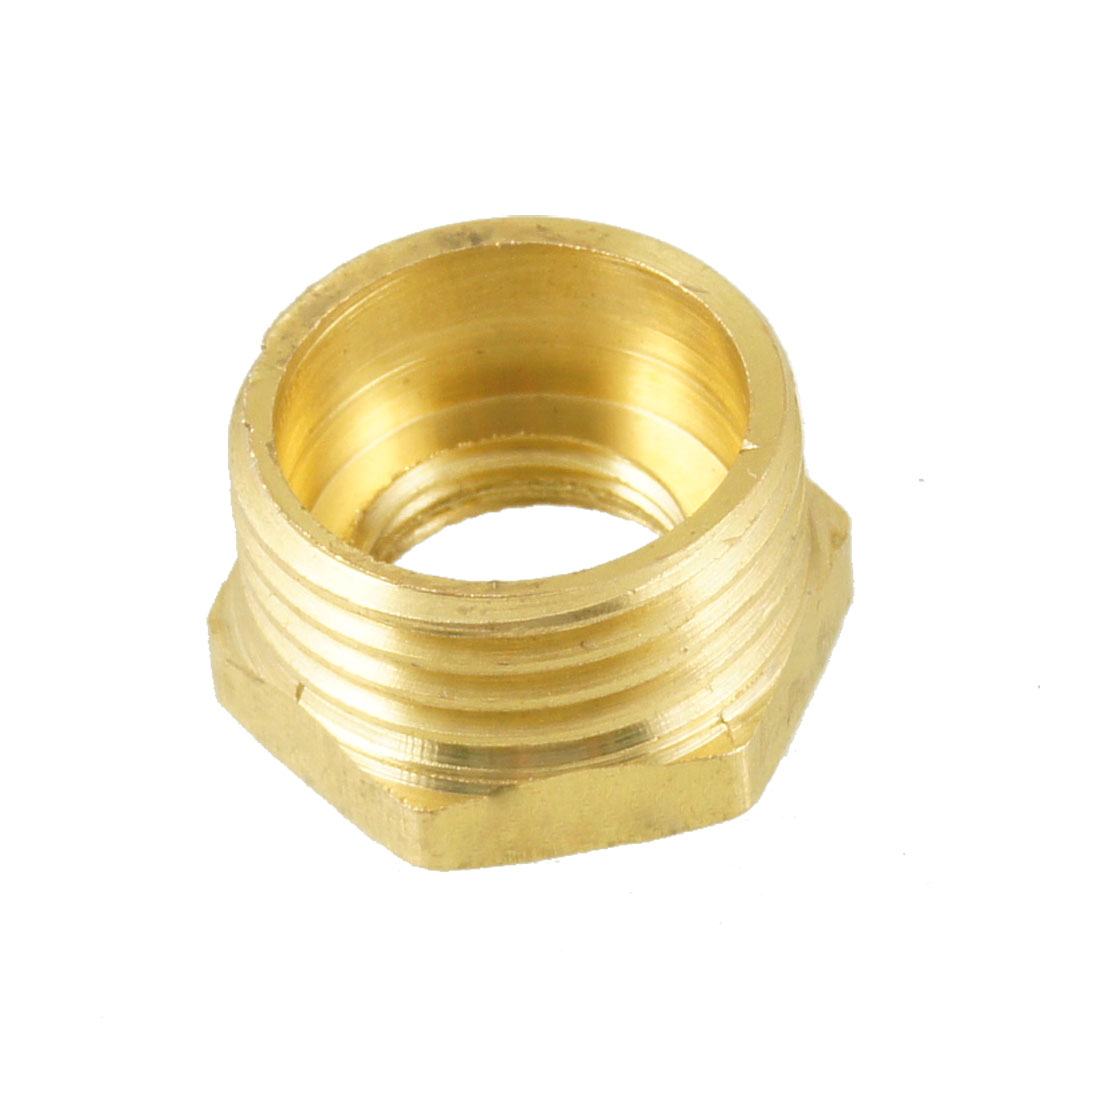 "1/2"" Male to 1/4"" NPT Female Hex Thread Bushing Piping Connector Adapter"